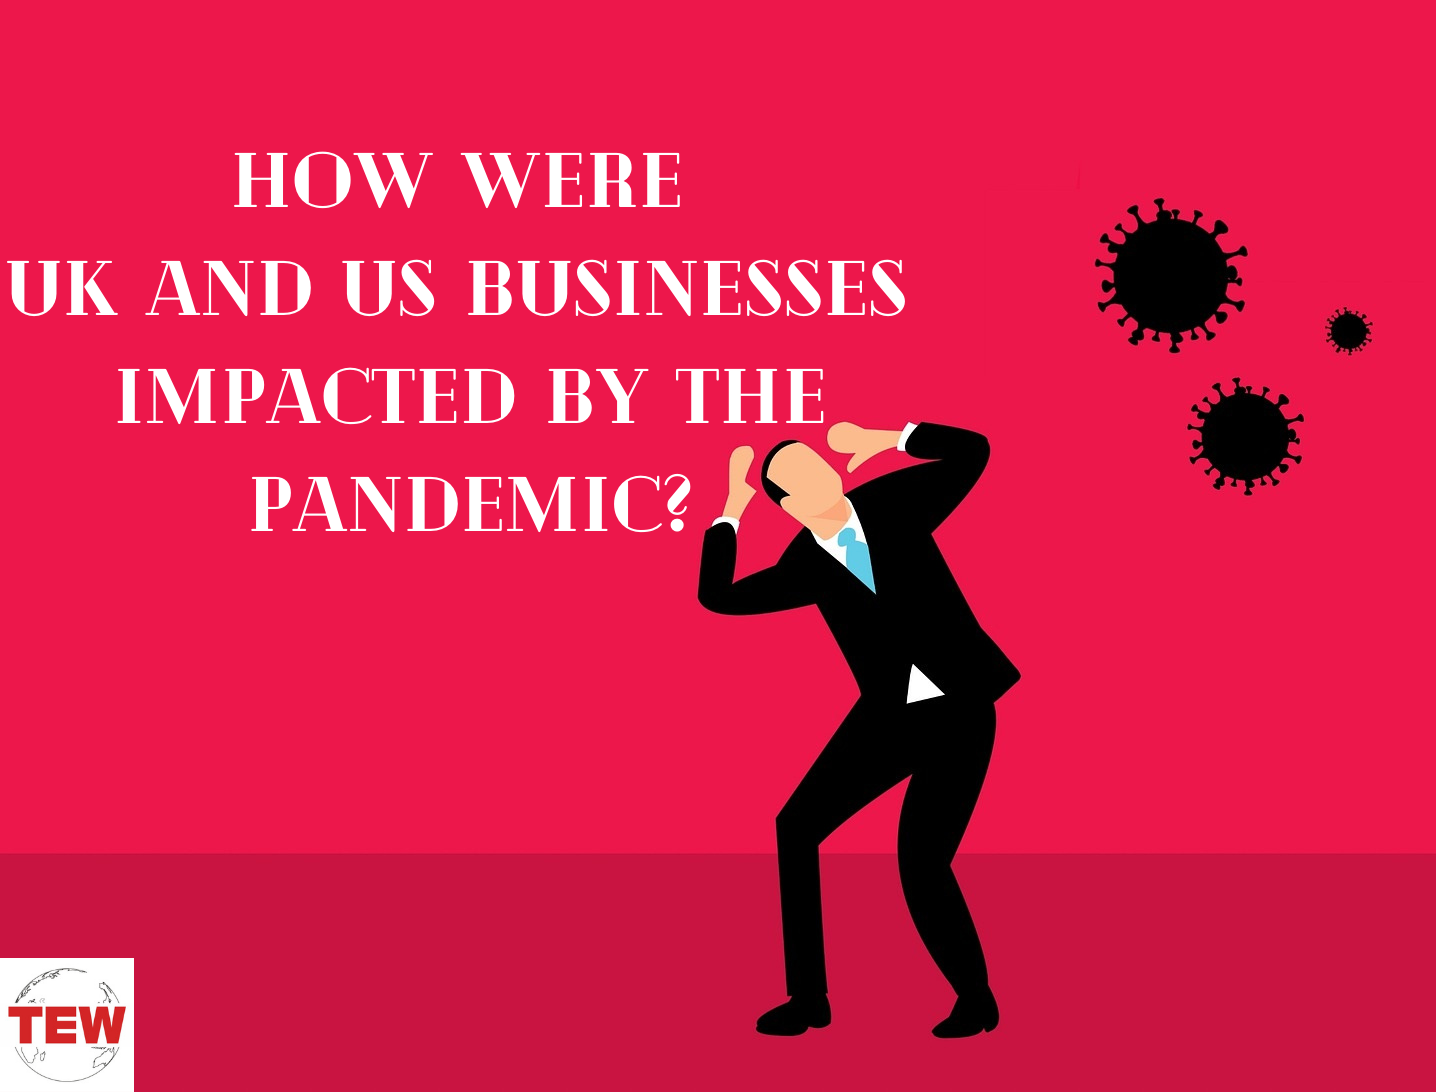 How Were UK and US Businesses Impacted by the Pandemic_